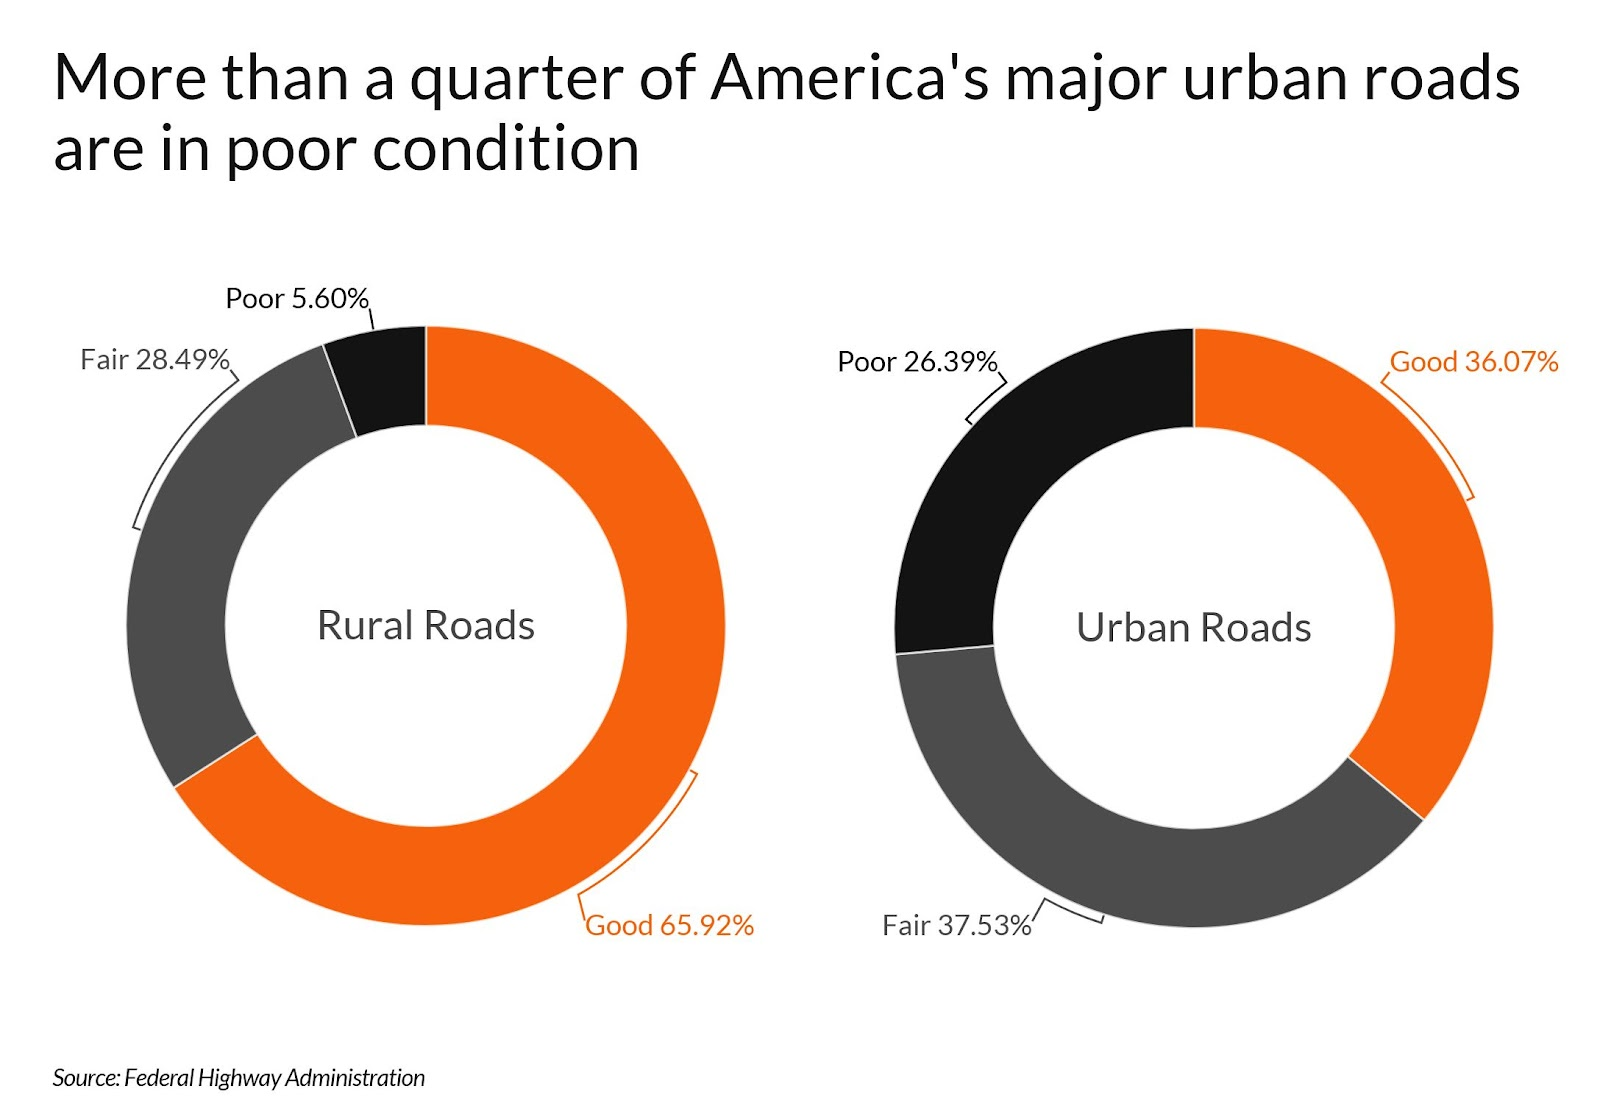 Donut chart showing percentage of U.S. major urban roads in poor condition